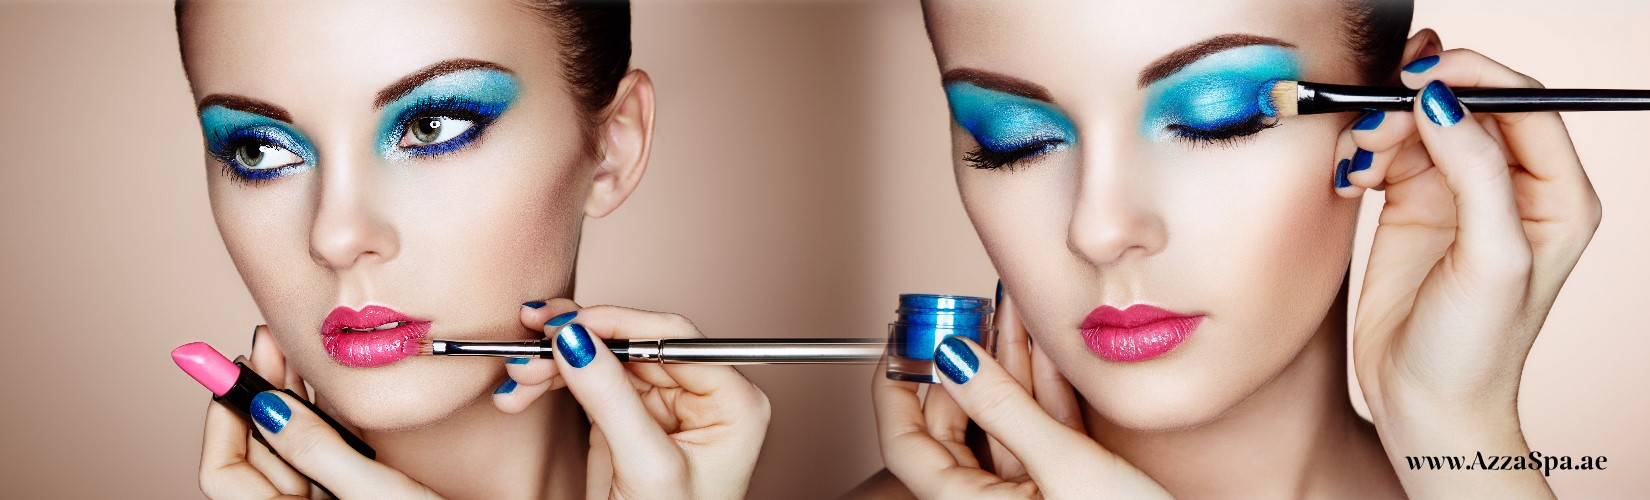 home-service-make-up-azzaspa